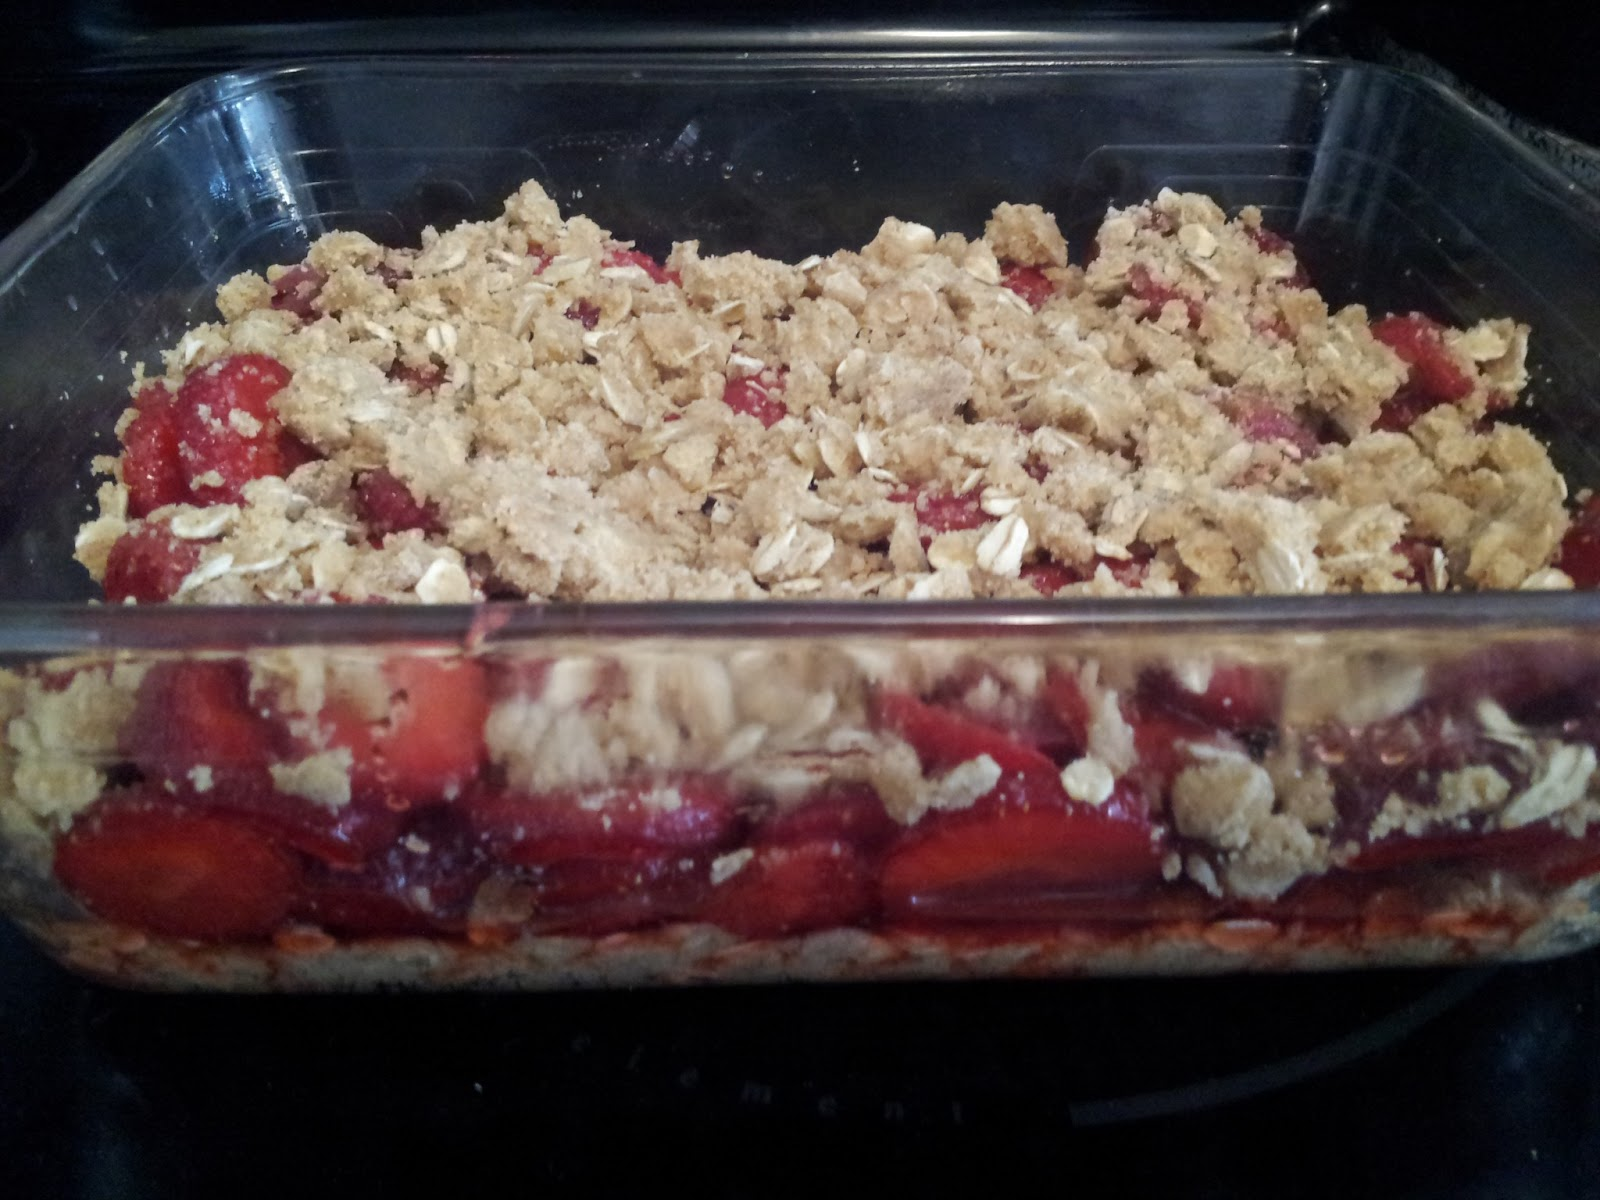 Dessert, baking, fresh fruit, strawberries